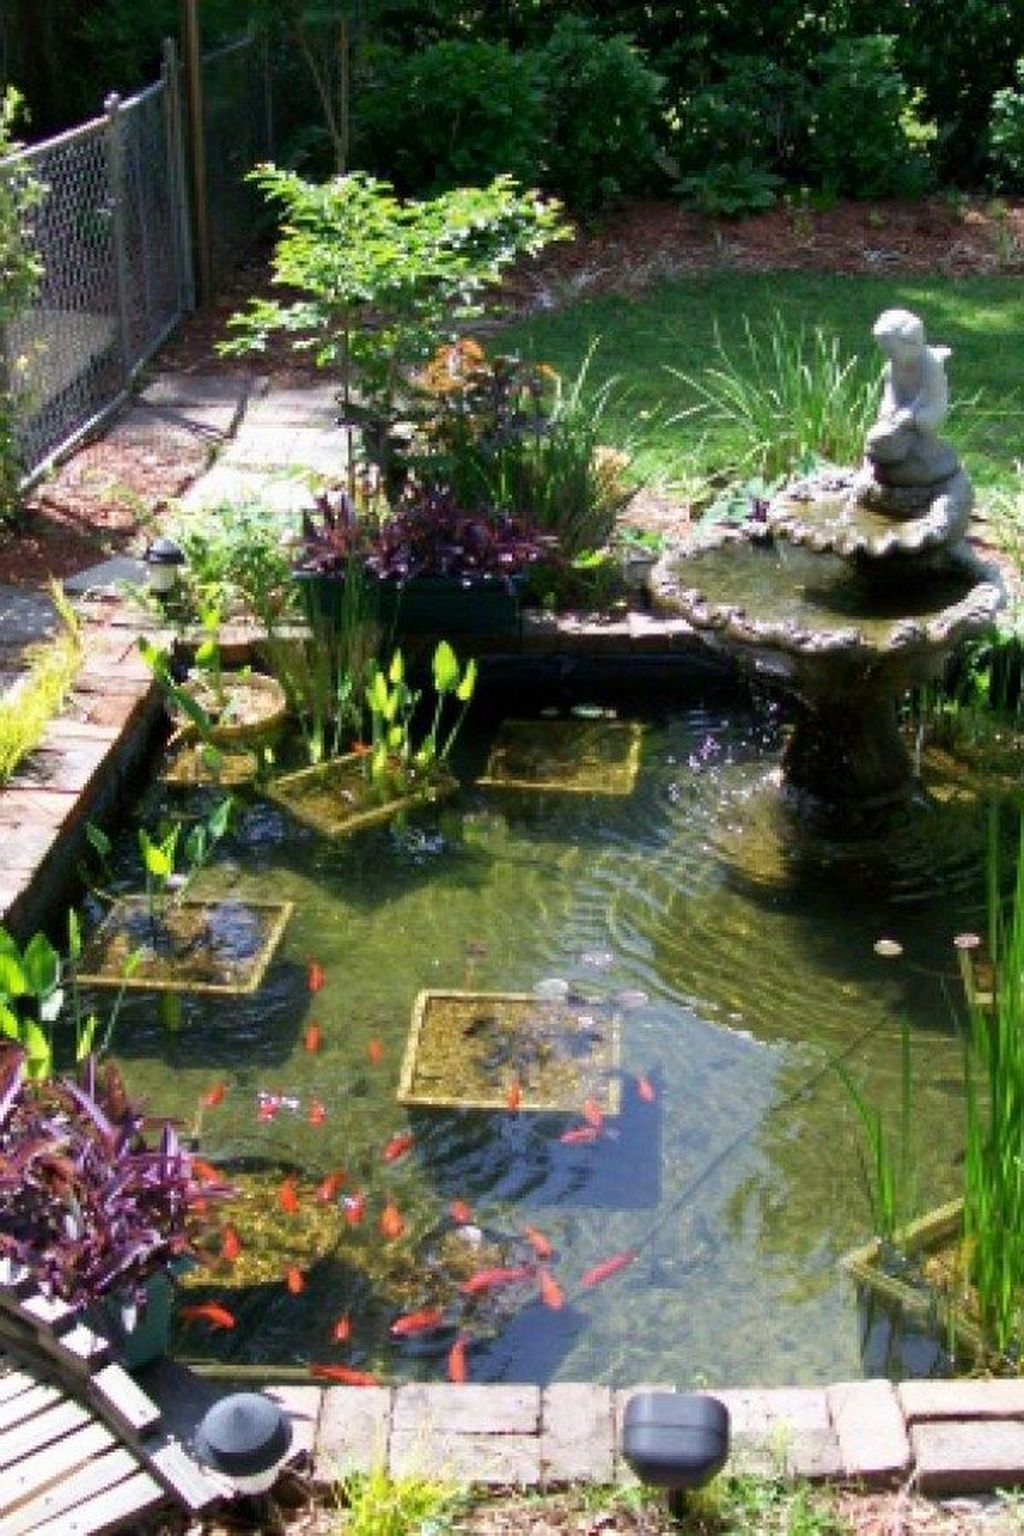 20 Cool Fish Pond Garden Landscaping Ideas For Backyard In 2020 Garden Pond Design Ponds Backyard Fish Pond Gardens